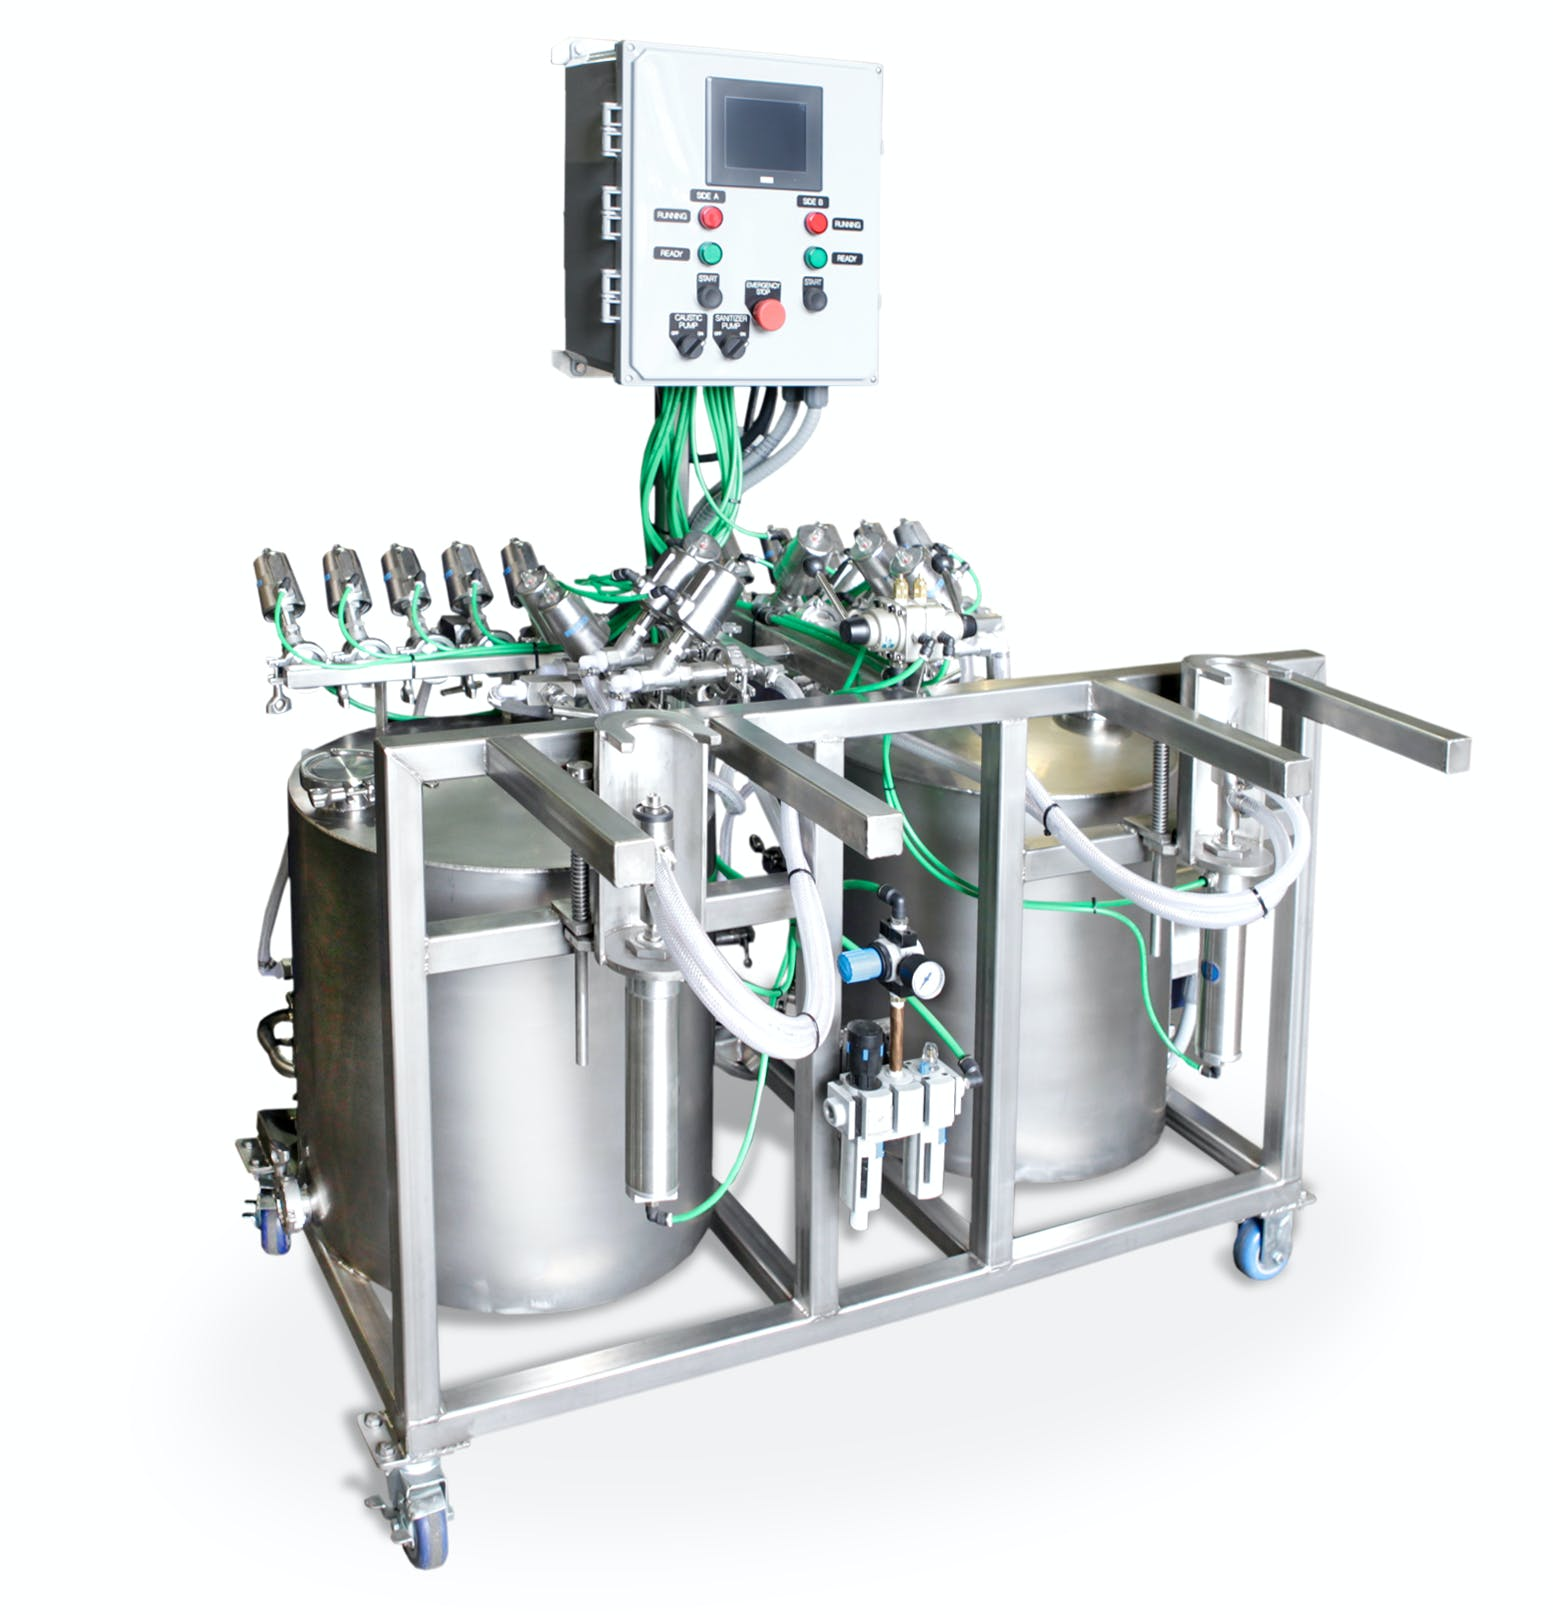 Dual head unit will clean approximately  40* kegs per hour.  - GSS Semi-Automatic Keg Washer — Dual Head - sold by Global Stainless Systems Inc.